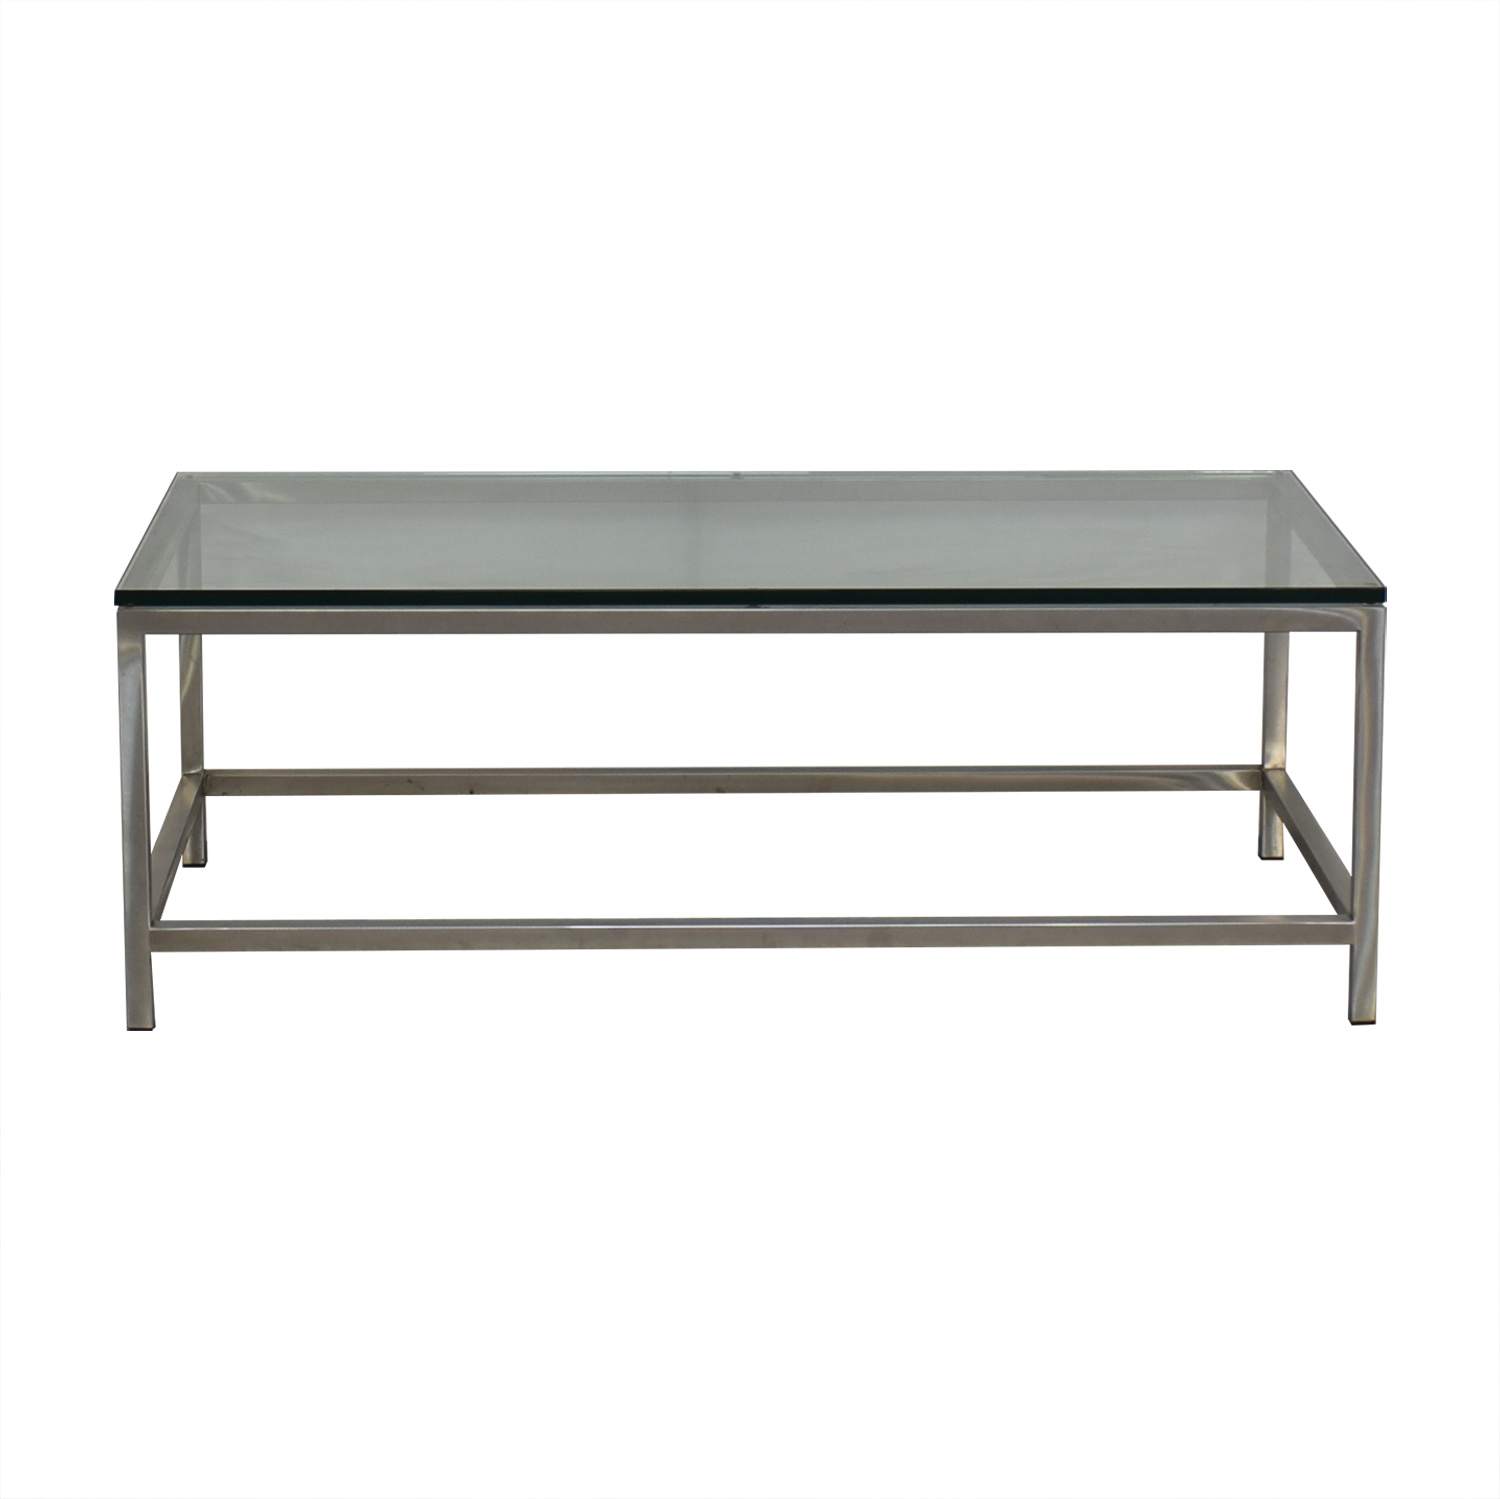 Crate & Barrel Era Rectangular Coffee Table / Coffee Tables